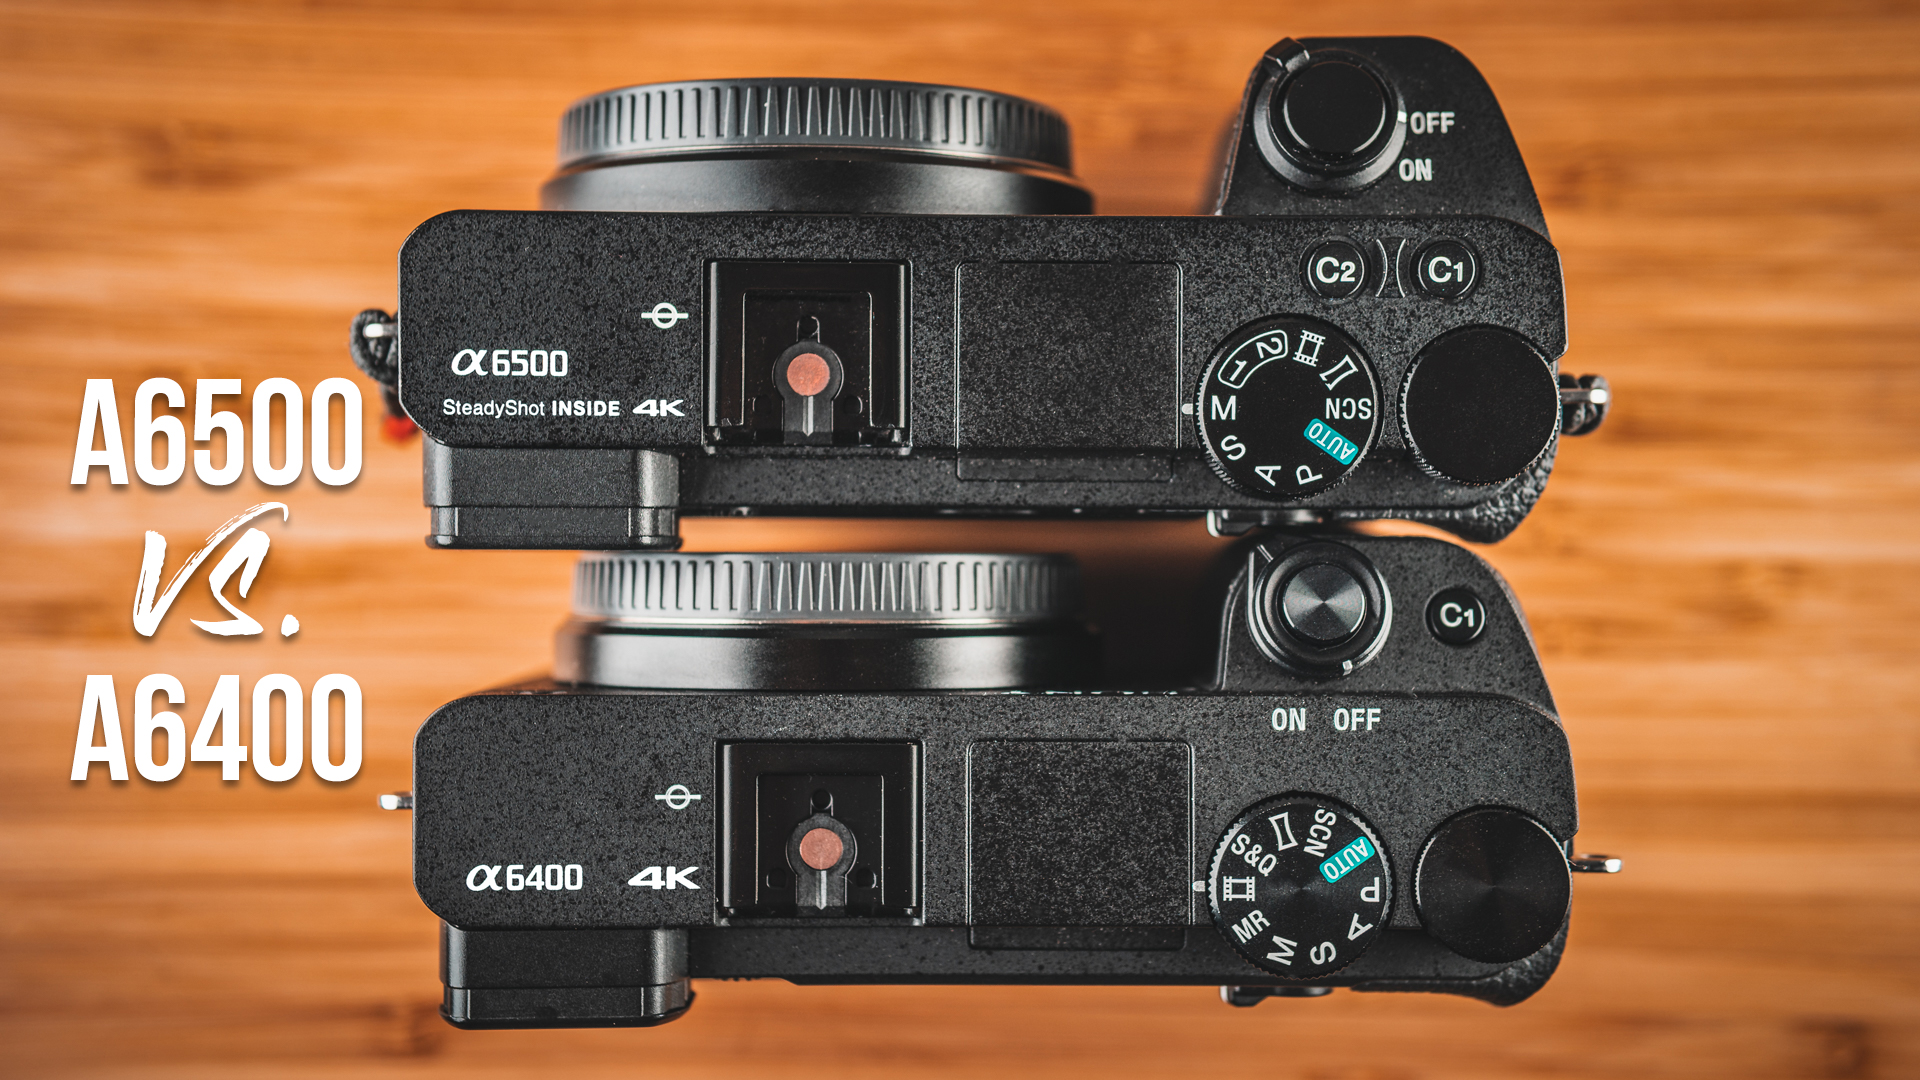 Sony A6500 vs A6400 // Which Camera Should You Get?